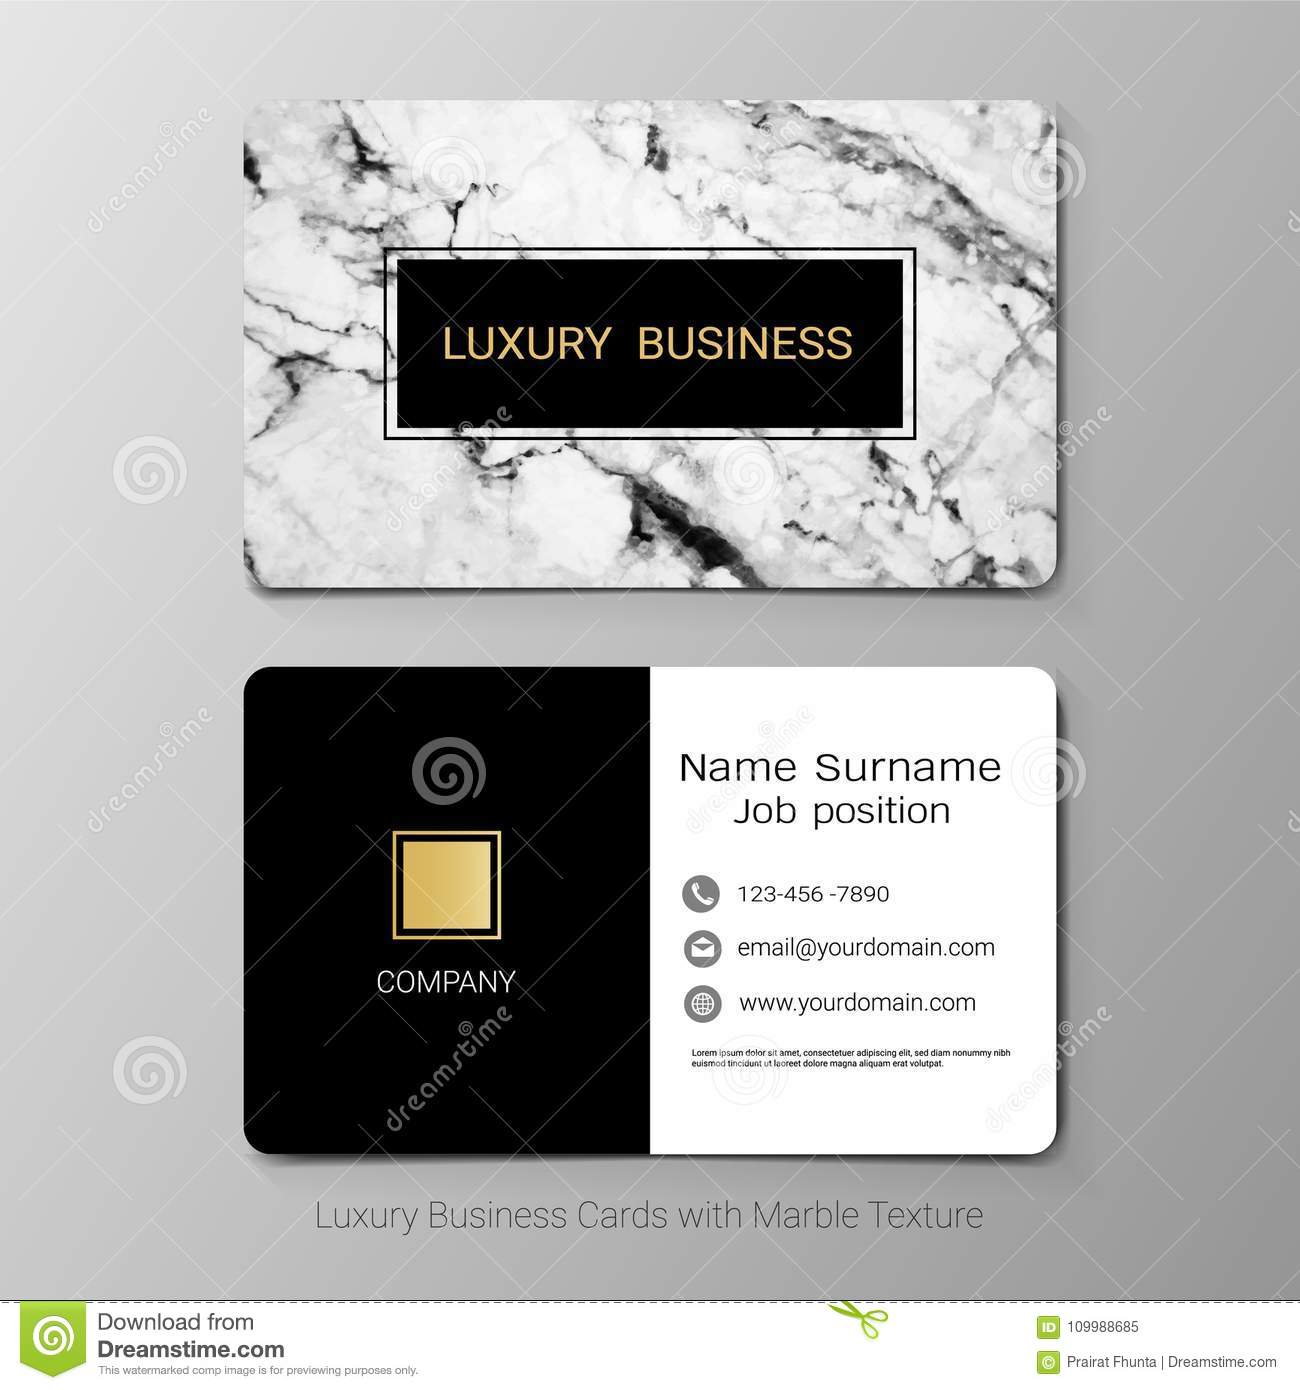 Business cards vector template stock vector illustration of download business cards vector template stock vector illustration of backdrop gold 109988685 reheart Choice Image